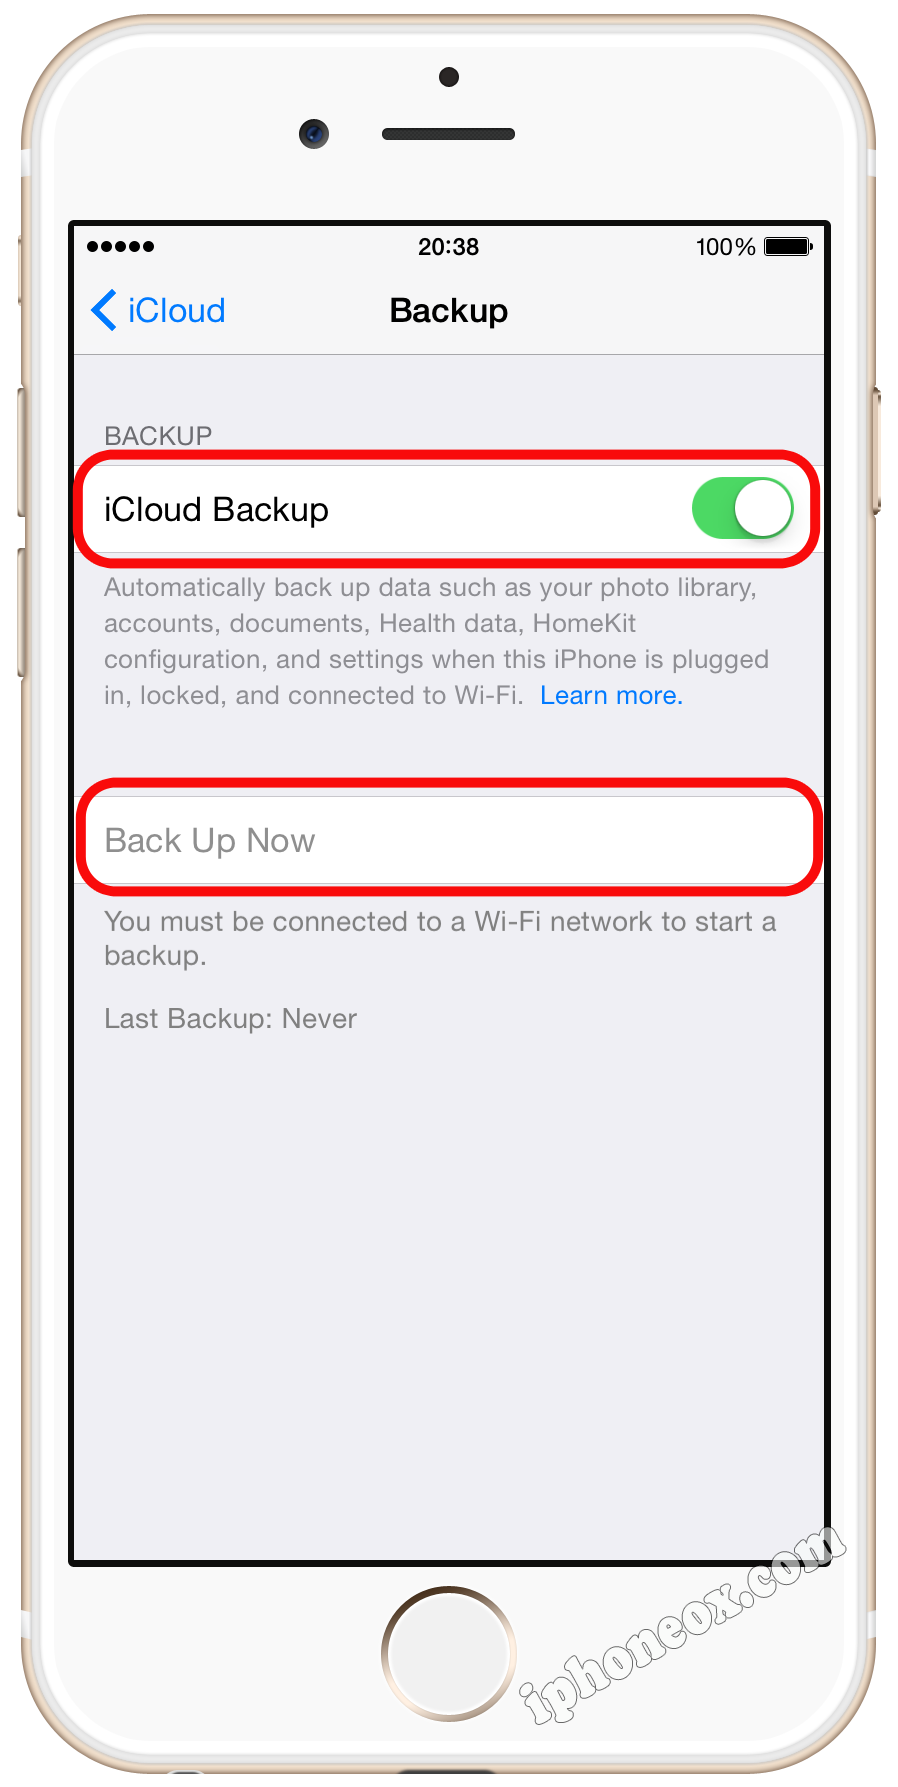 Turn on iCloud Backup and tap Back Up Now